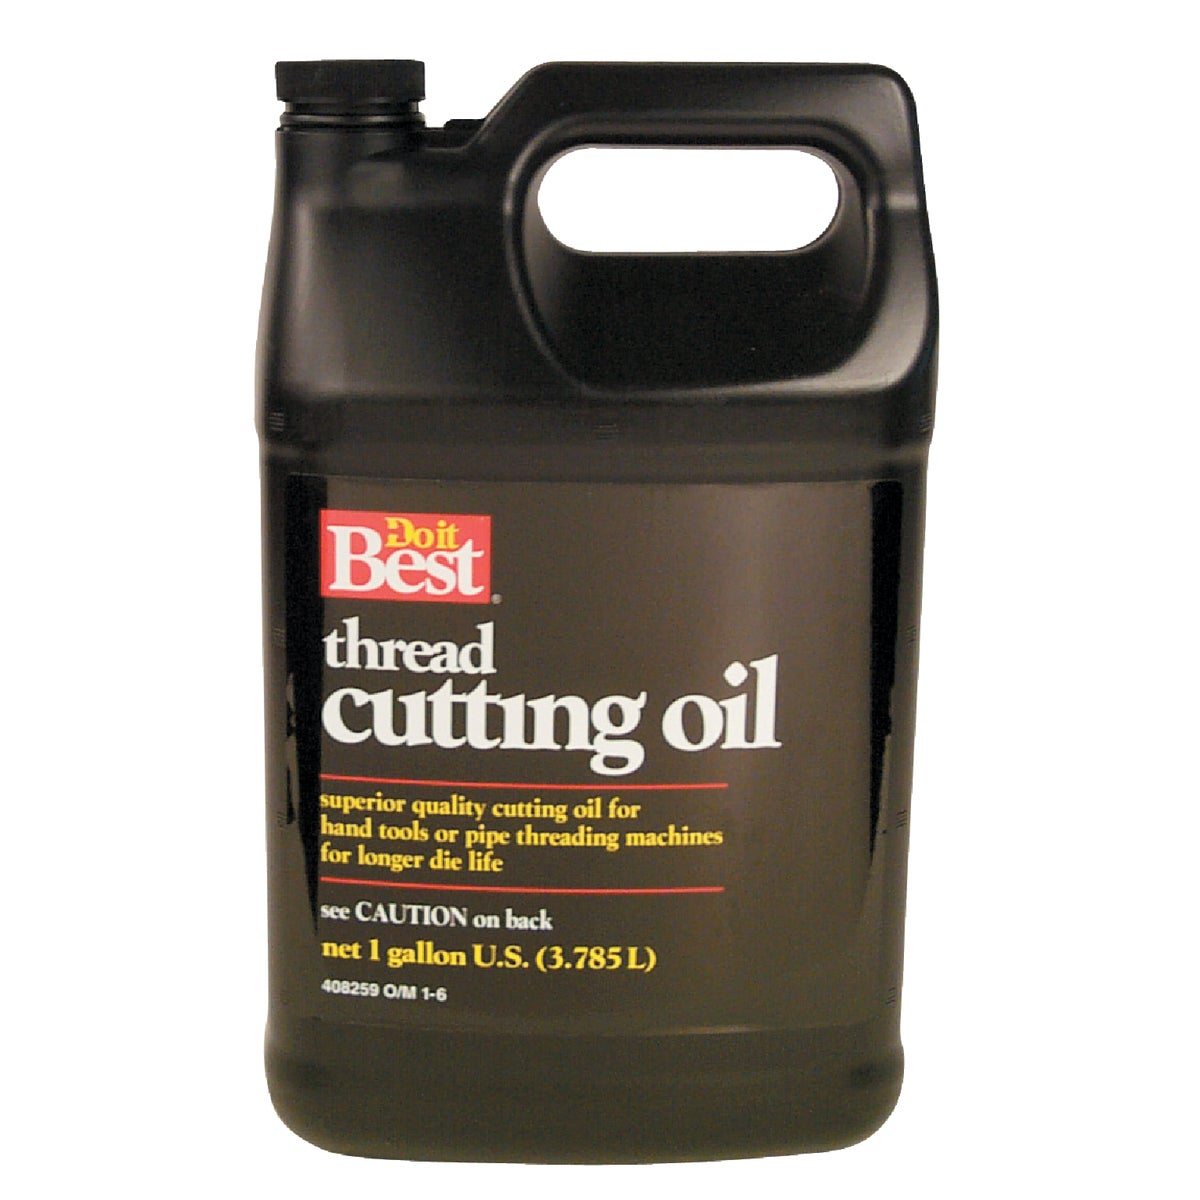 GALLON THREADCUT OIL - 016170 by Wm H Harvey Co